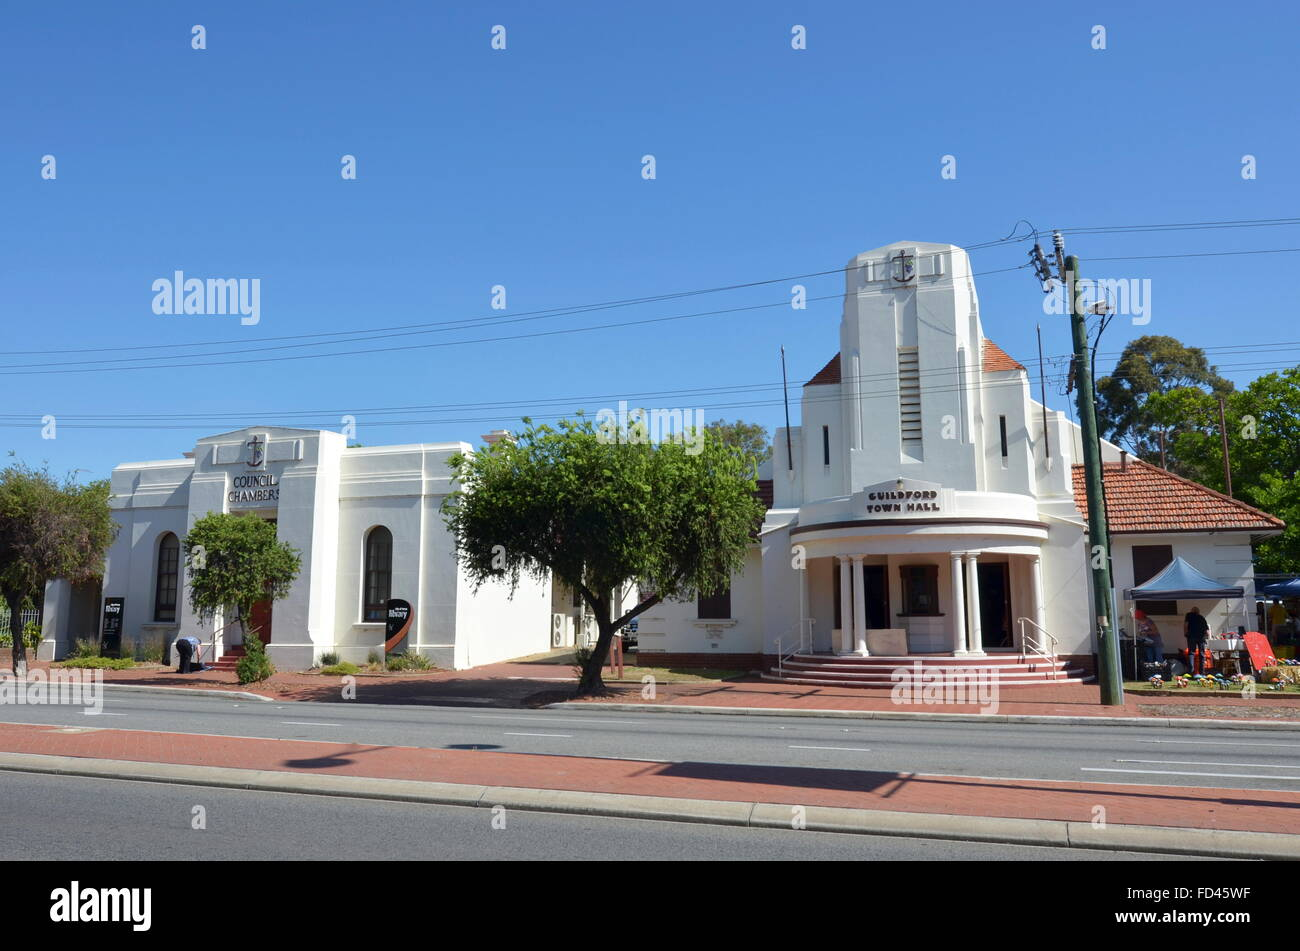 Guildford Library and Town Hall in Guildford, Australia - Stock Image